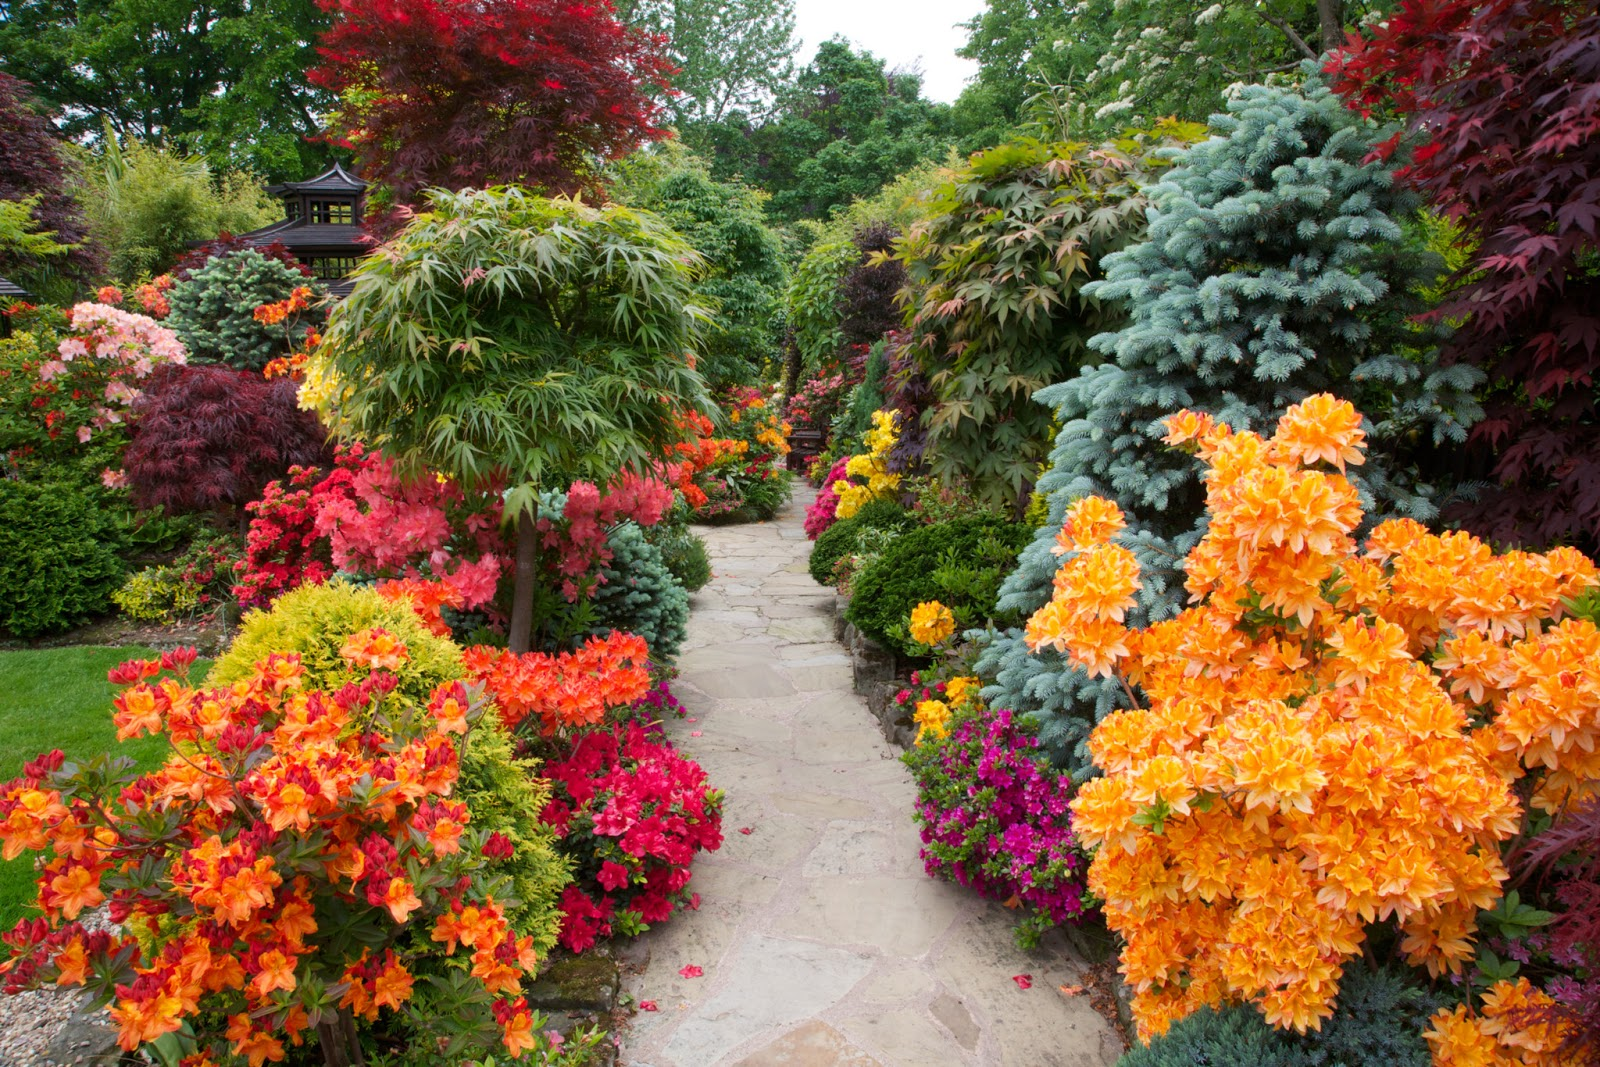 http://2.bp.blogspot.com/-TvzF4U2W6QY/UeAWjy3W0TI/AAAAAAAAGf8/kPoSsSYyvZY/s1600/Azalea+flowers+line+the+pathway+to+the+lower+garden.jpg